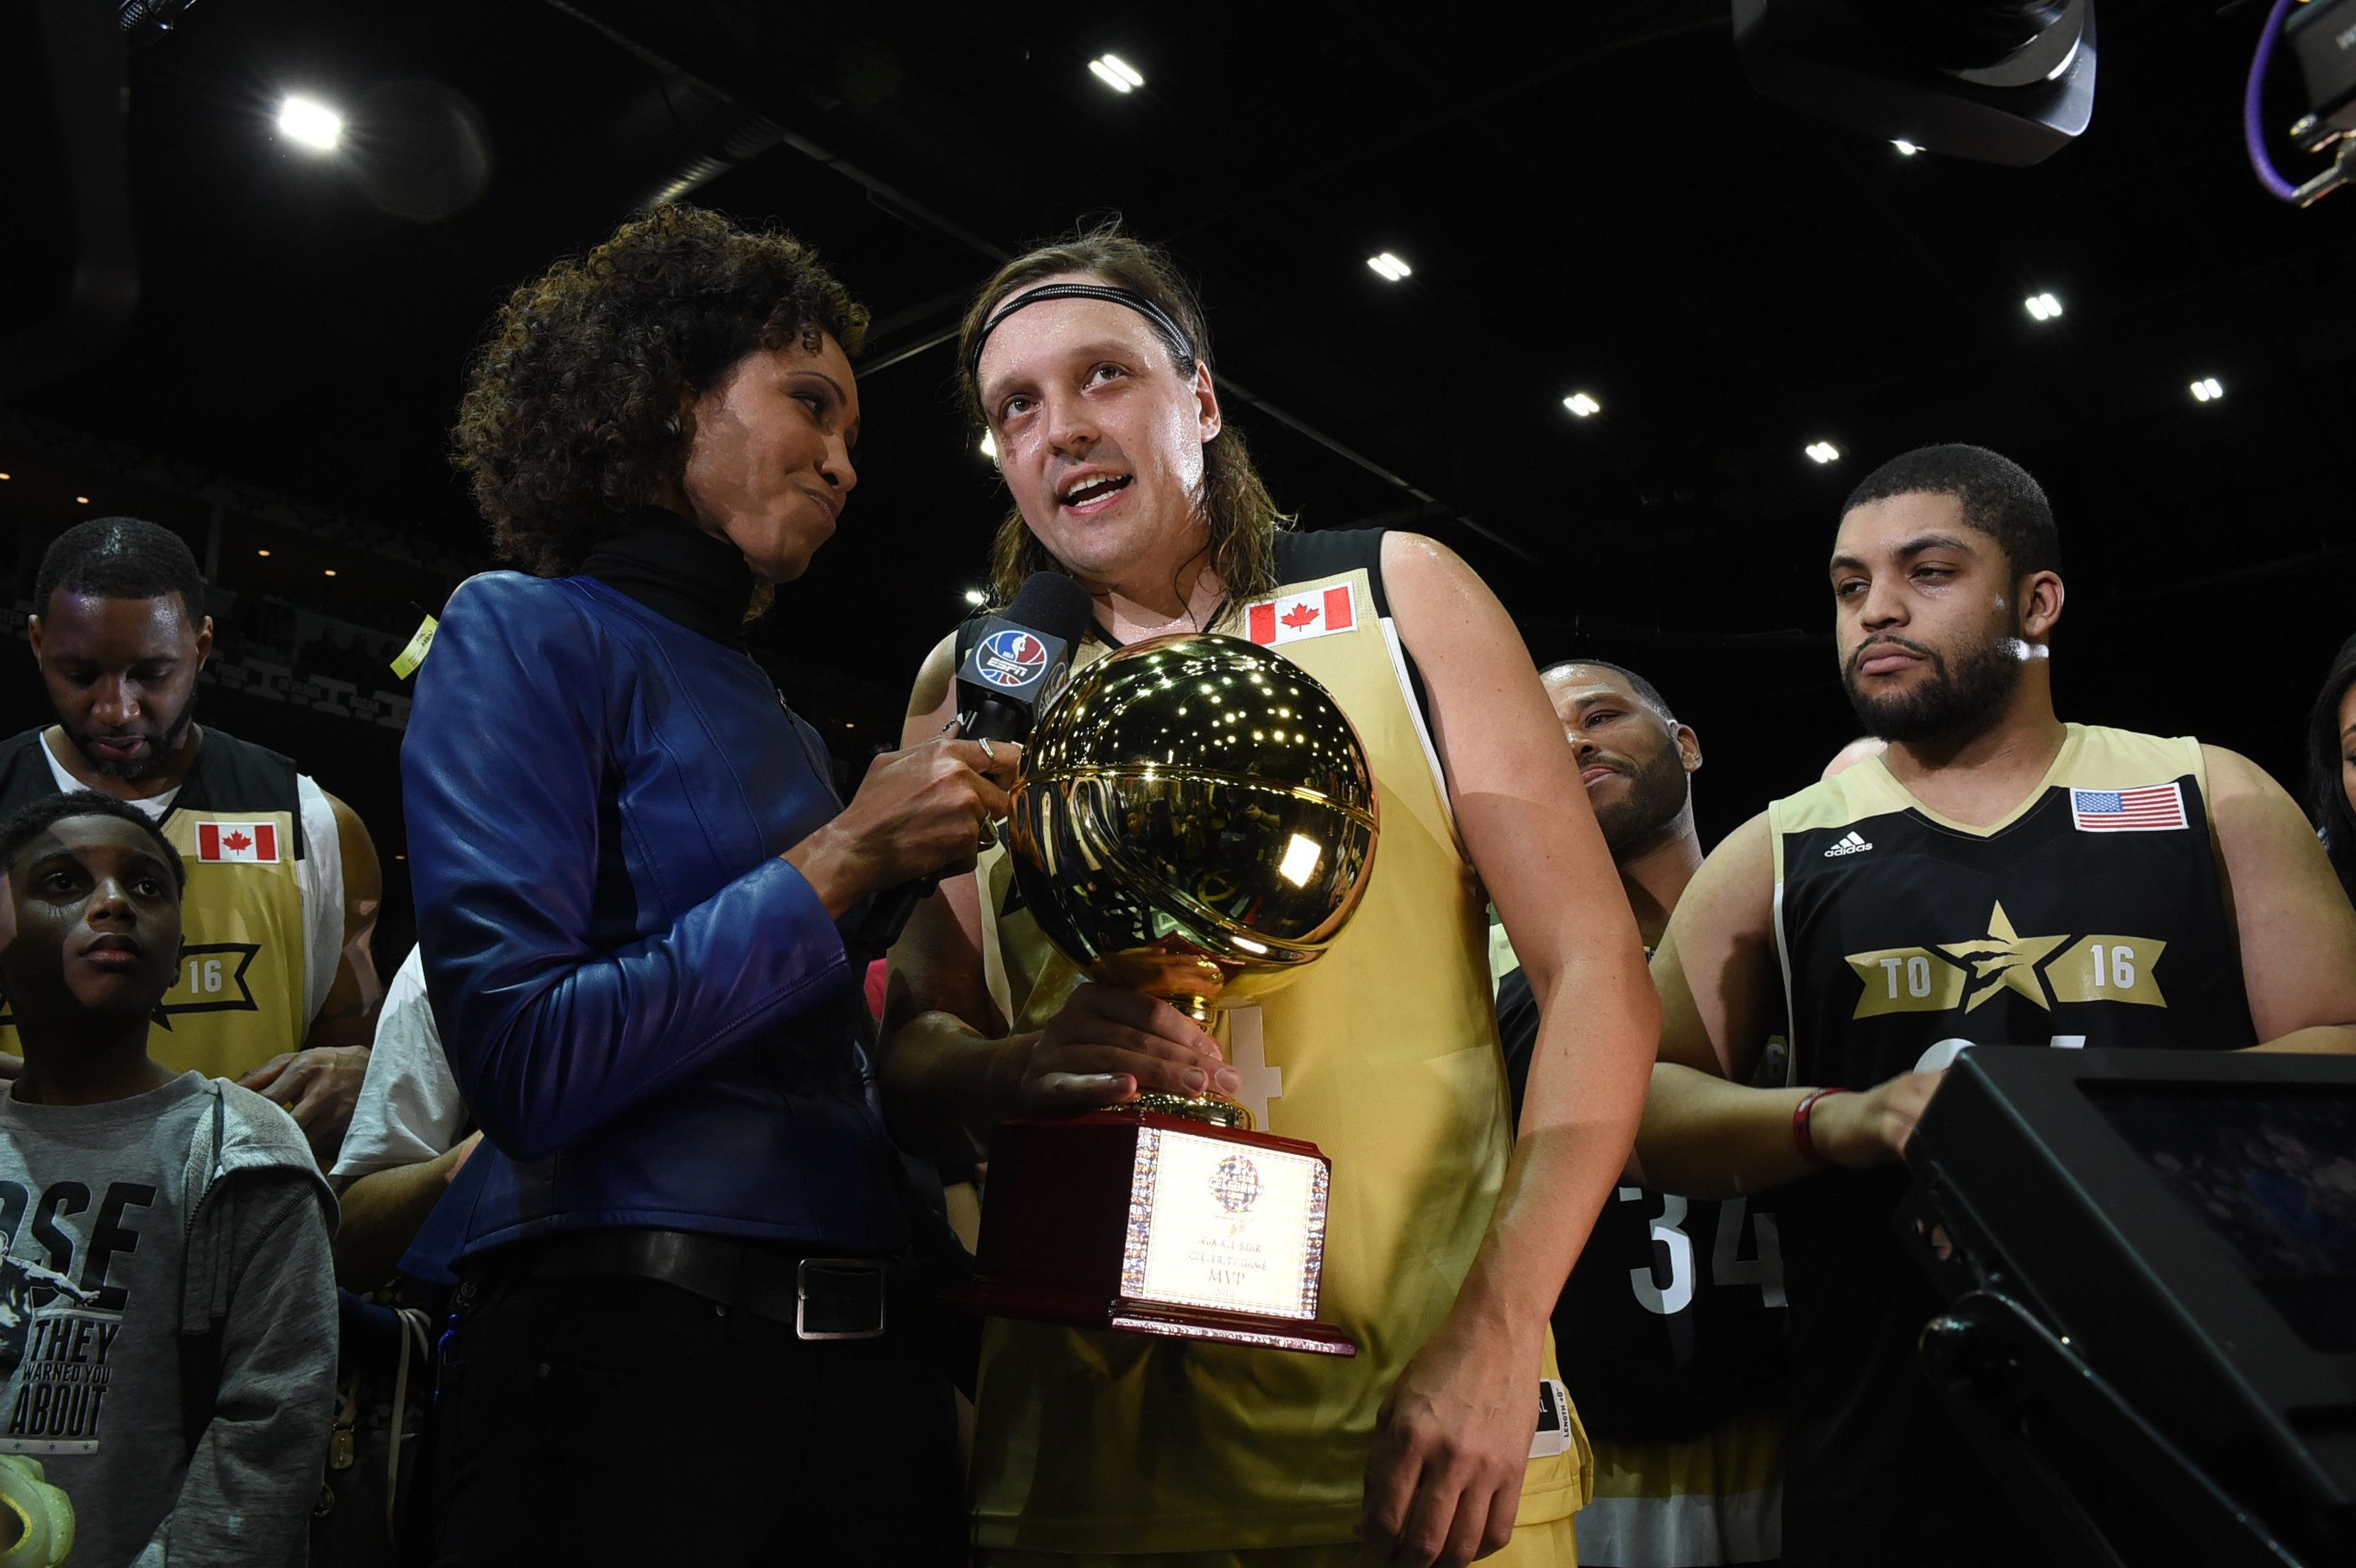 TORONTO, CANADA - FEBRUARY 12: Sage Steele of ESPN interviews Win Butler who won the MVP award during the NBA All-Star Celebrity Game Presented by Mountain Dew as part of 2016 All-Star Weekend at the Ricoh Coliseum on February 12, 2016 in Toronto, Ontario, Canada. NOTE TO USER: User expressly acknowledges and agrees that, by downloading and/or using this photograph, user is consenting to the terms and conditions of the Getty Images License Agreement.  Mandatory Copyright Notice: Copyright 2016 NBAE (Photo by Ron Turenne/NBAE via Getty Images)